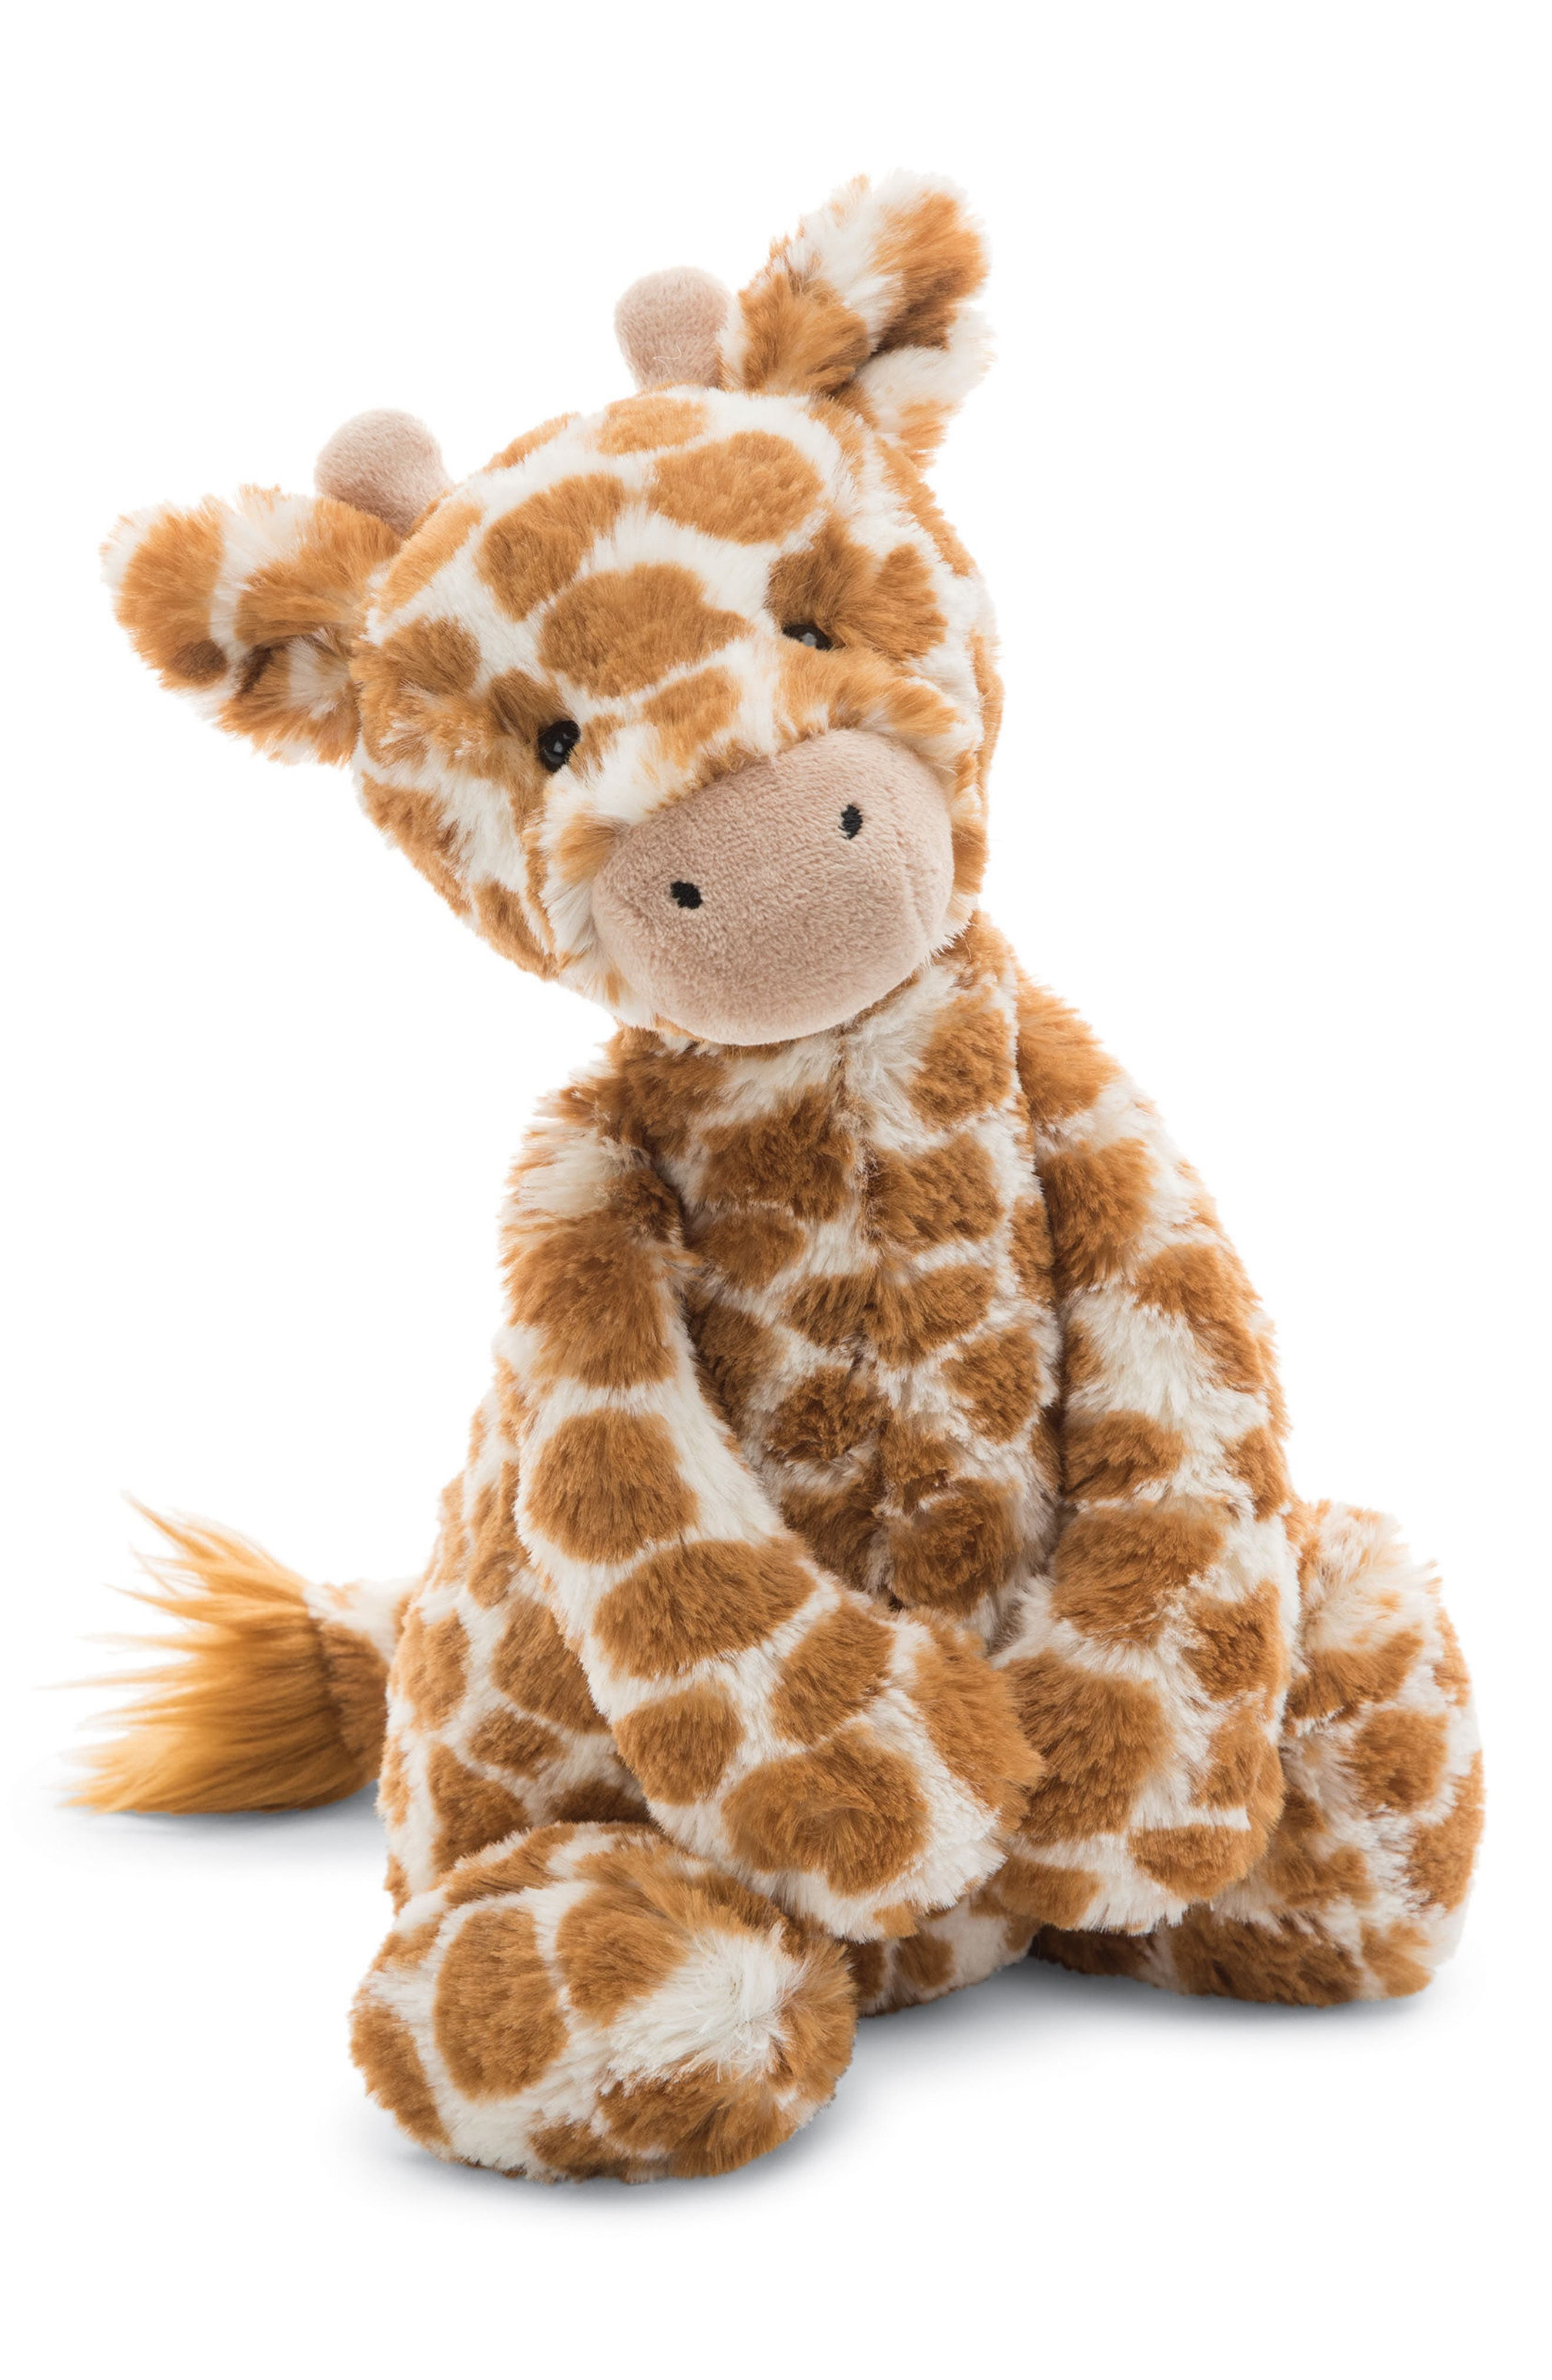 Bashful Giraffe Stuffed Animal,                             Main thumbnail 1, color,                             Brown / Cream